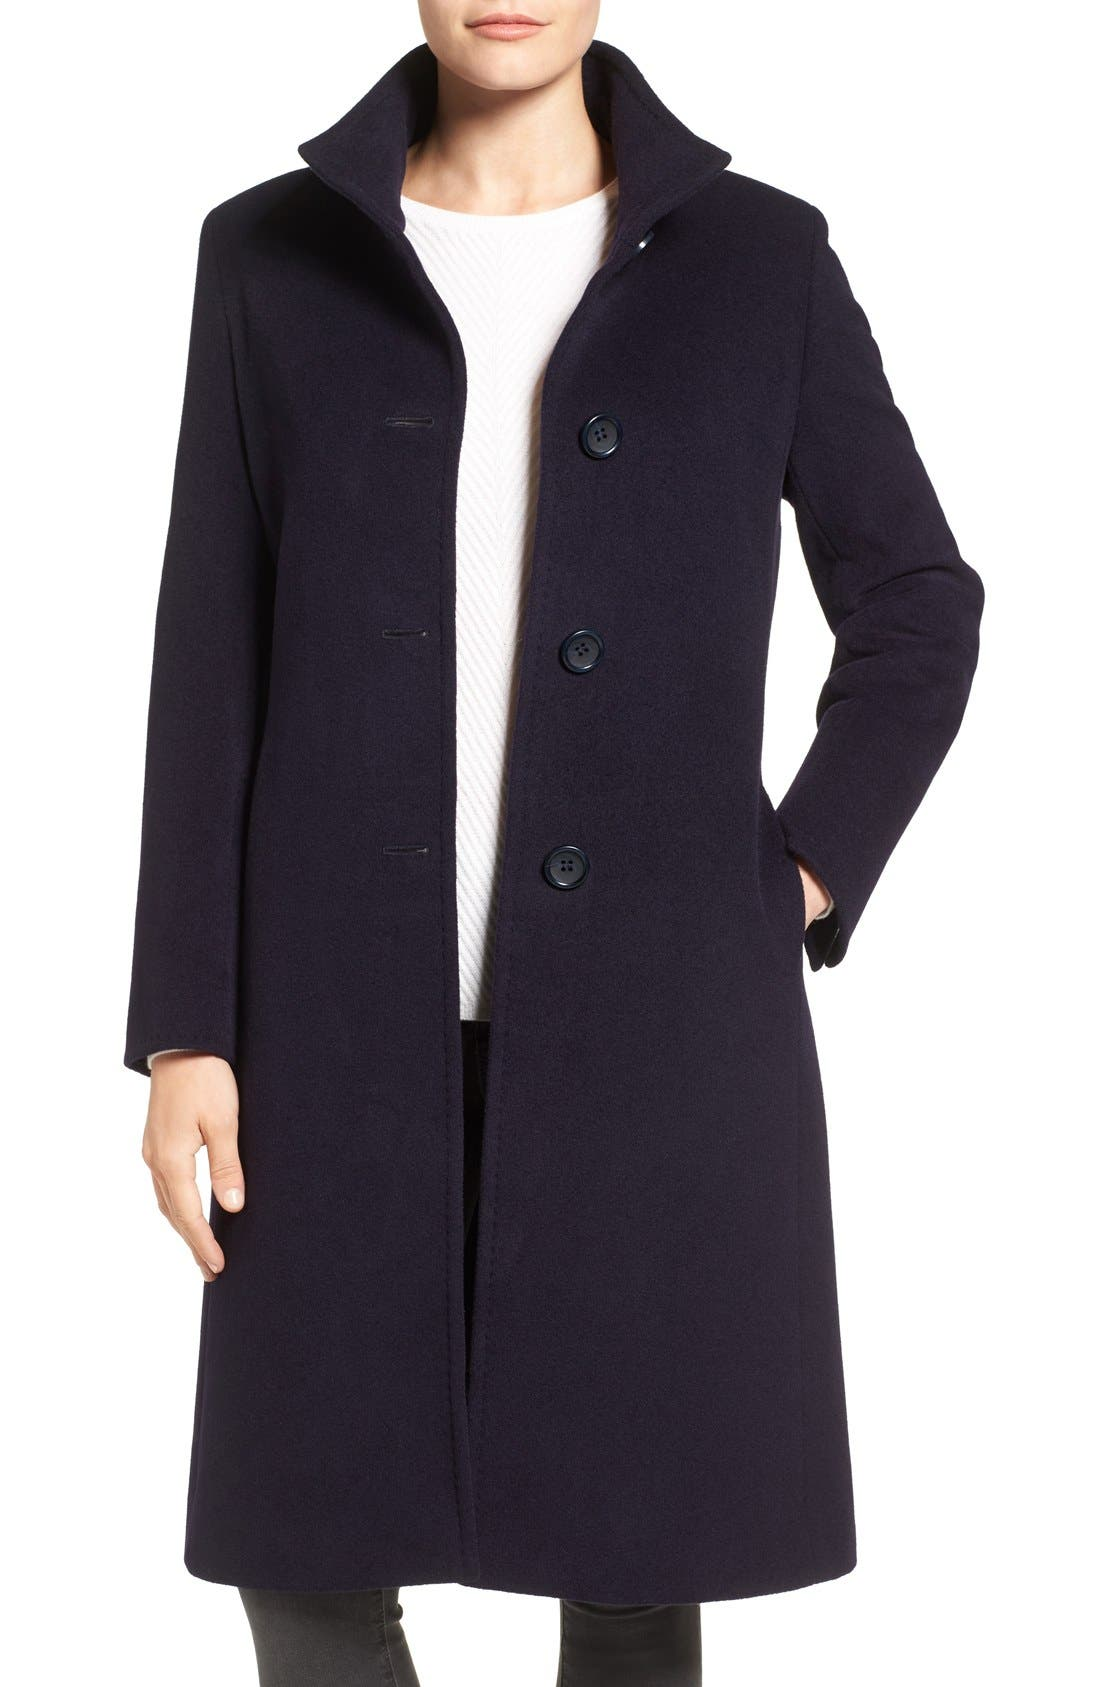 Alternate Image 1 Selected - Cinzia Rocca Icons Stand Collar Wool Blend Walking Coat